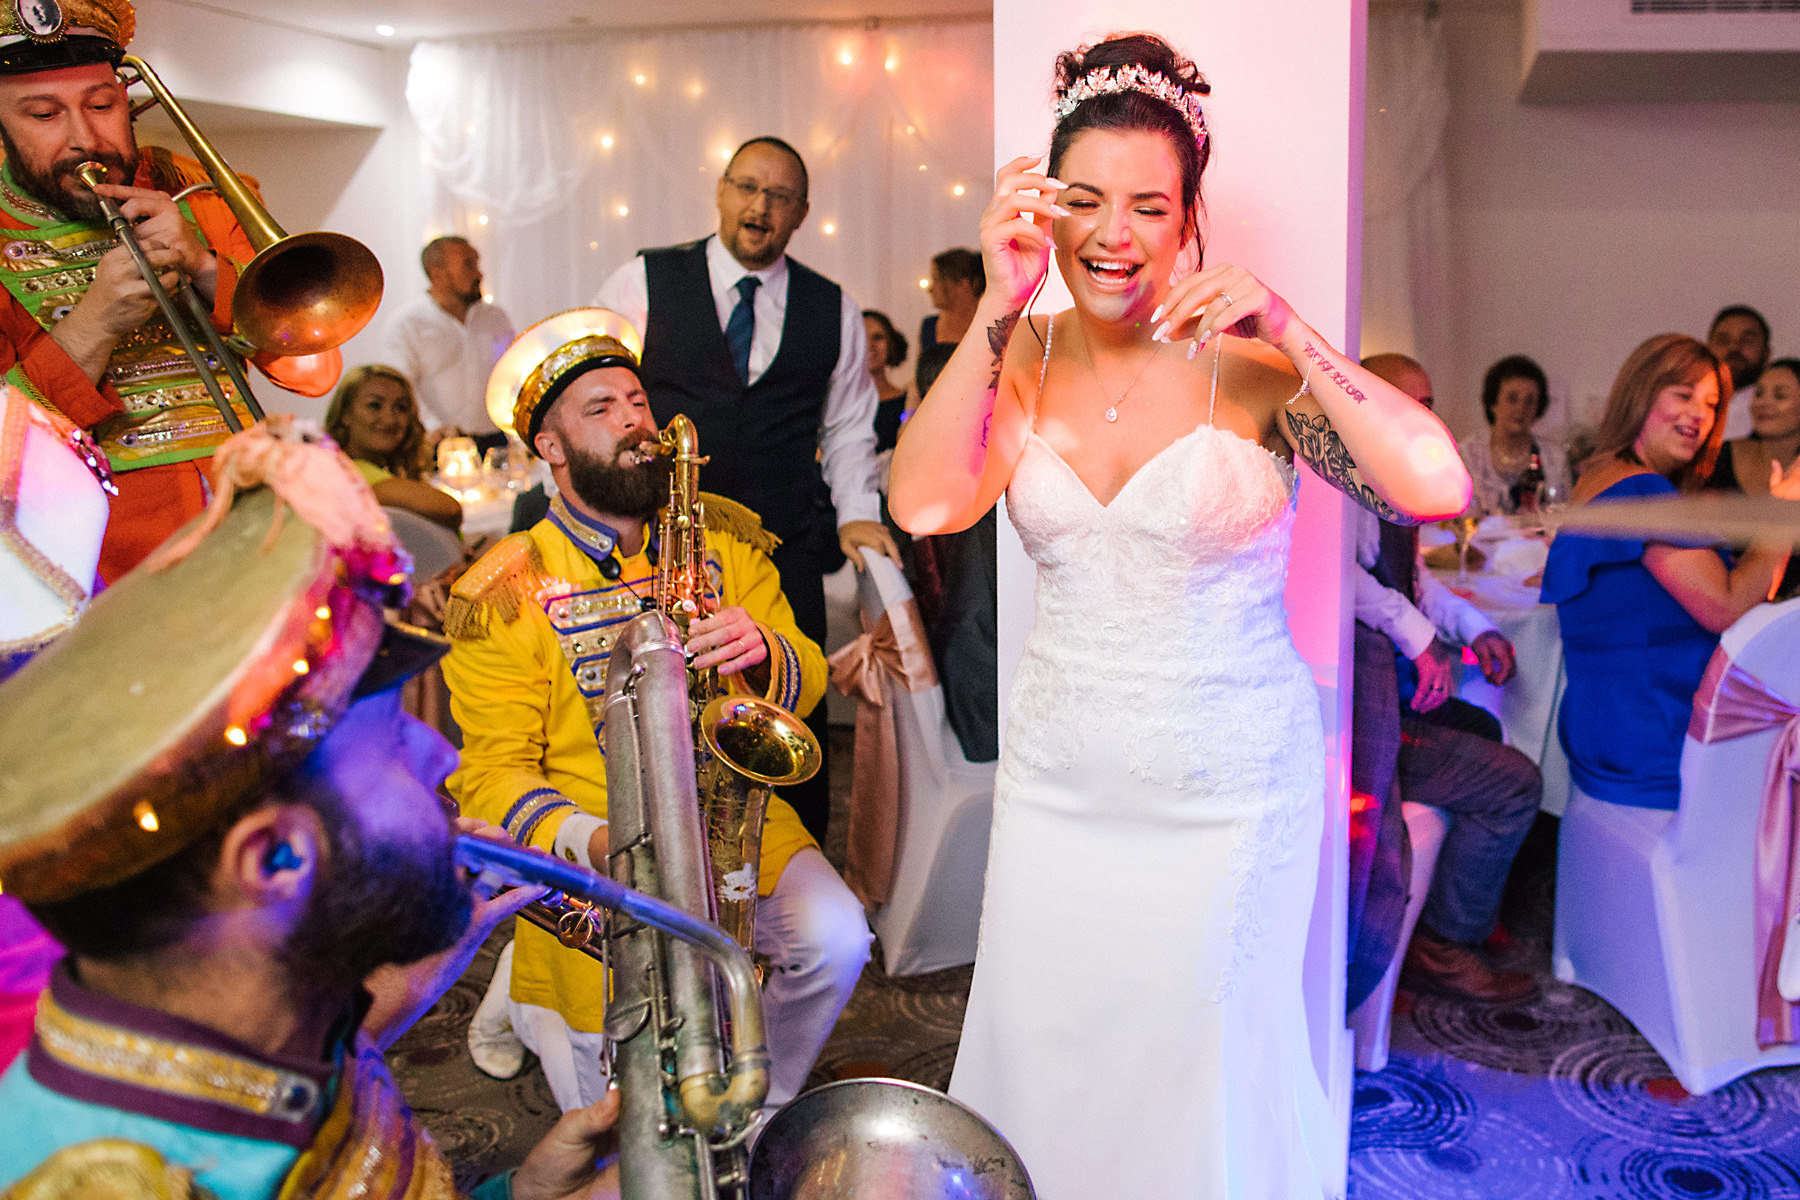 mr wilsons second liners wedding band